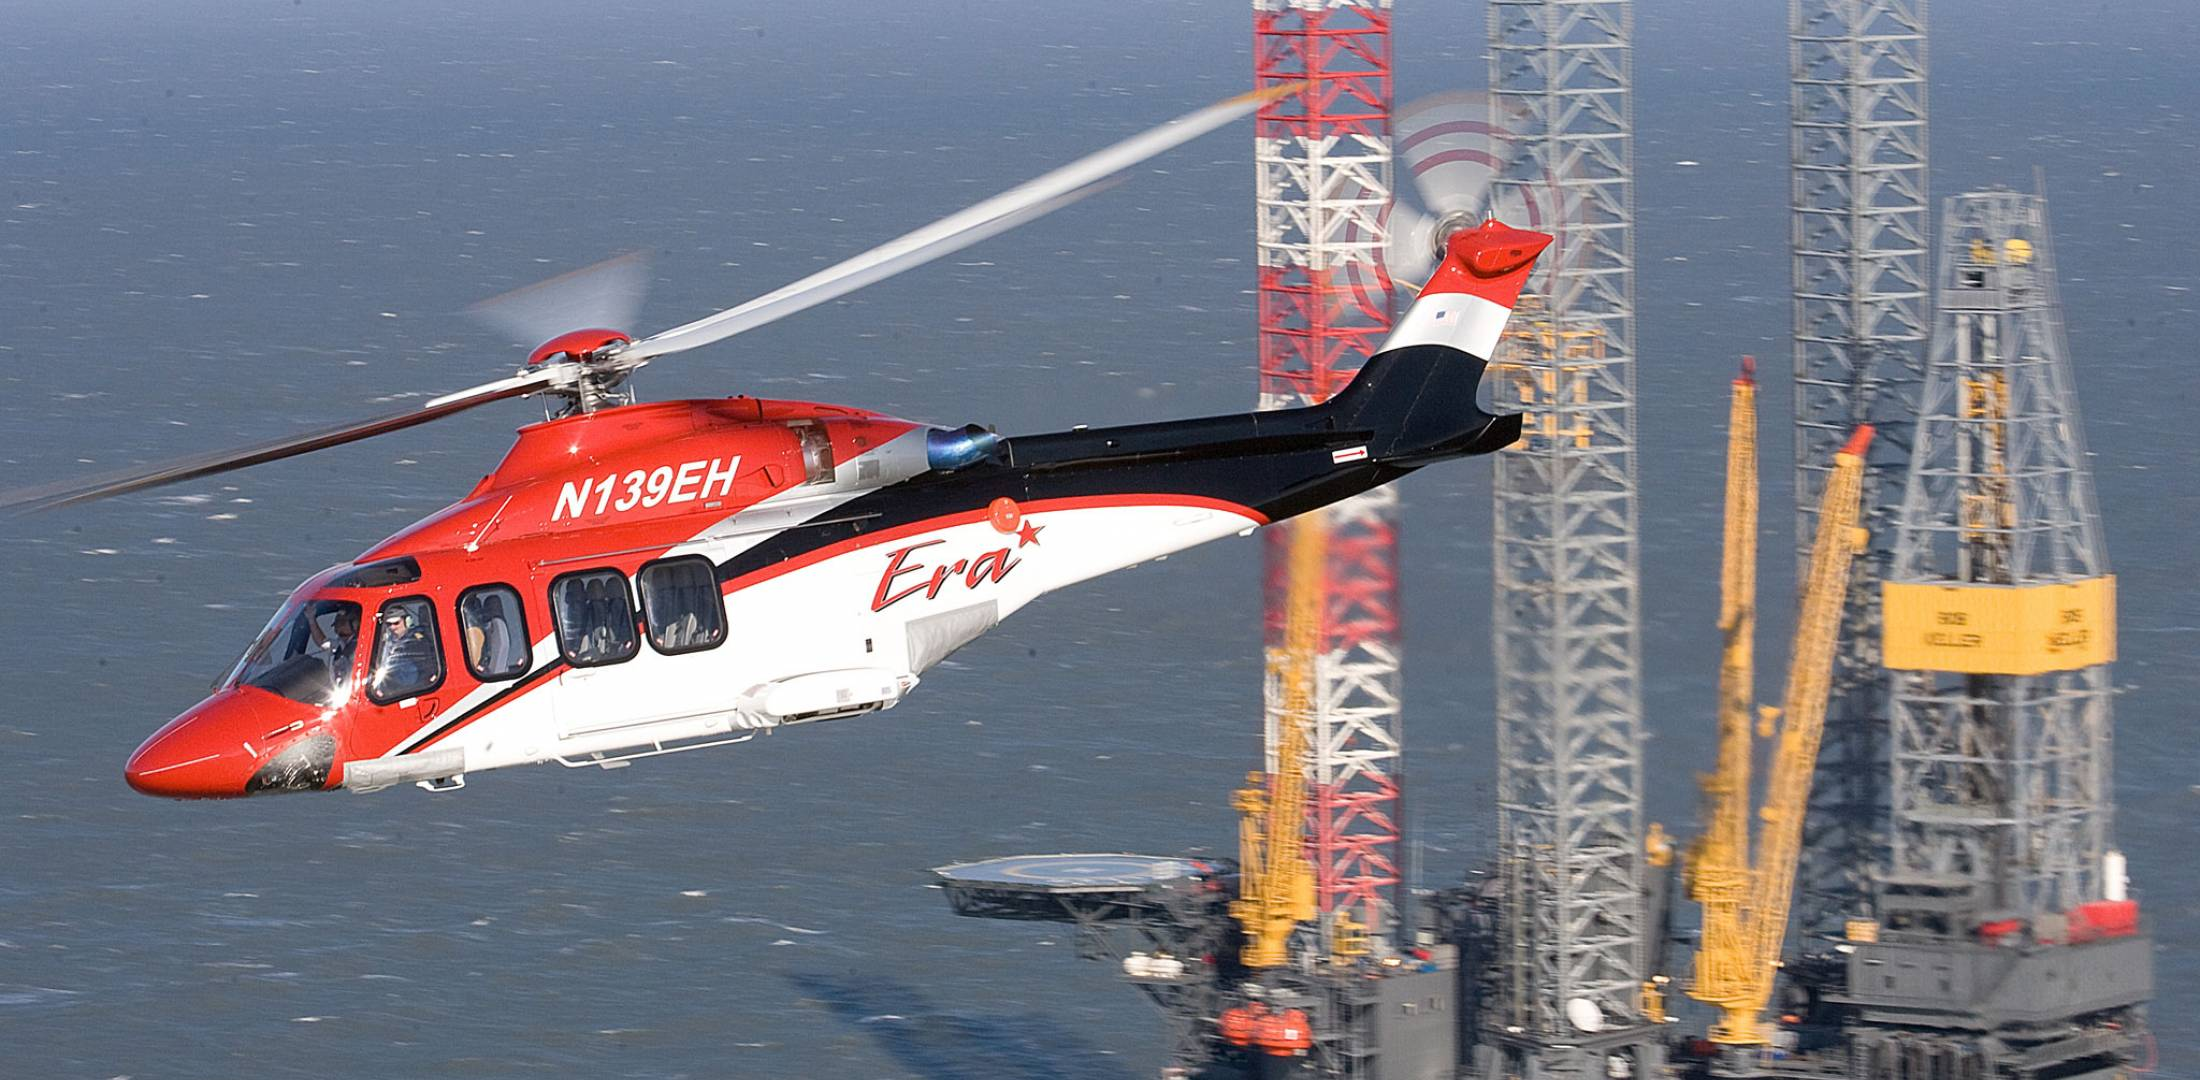 AW139 flying by oil rig